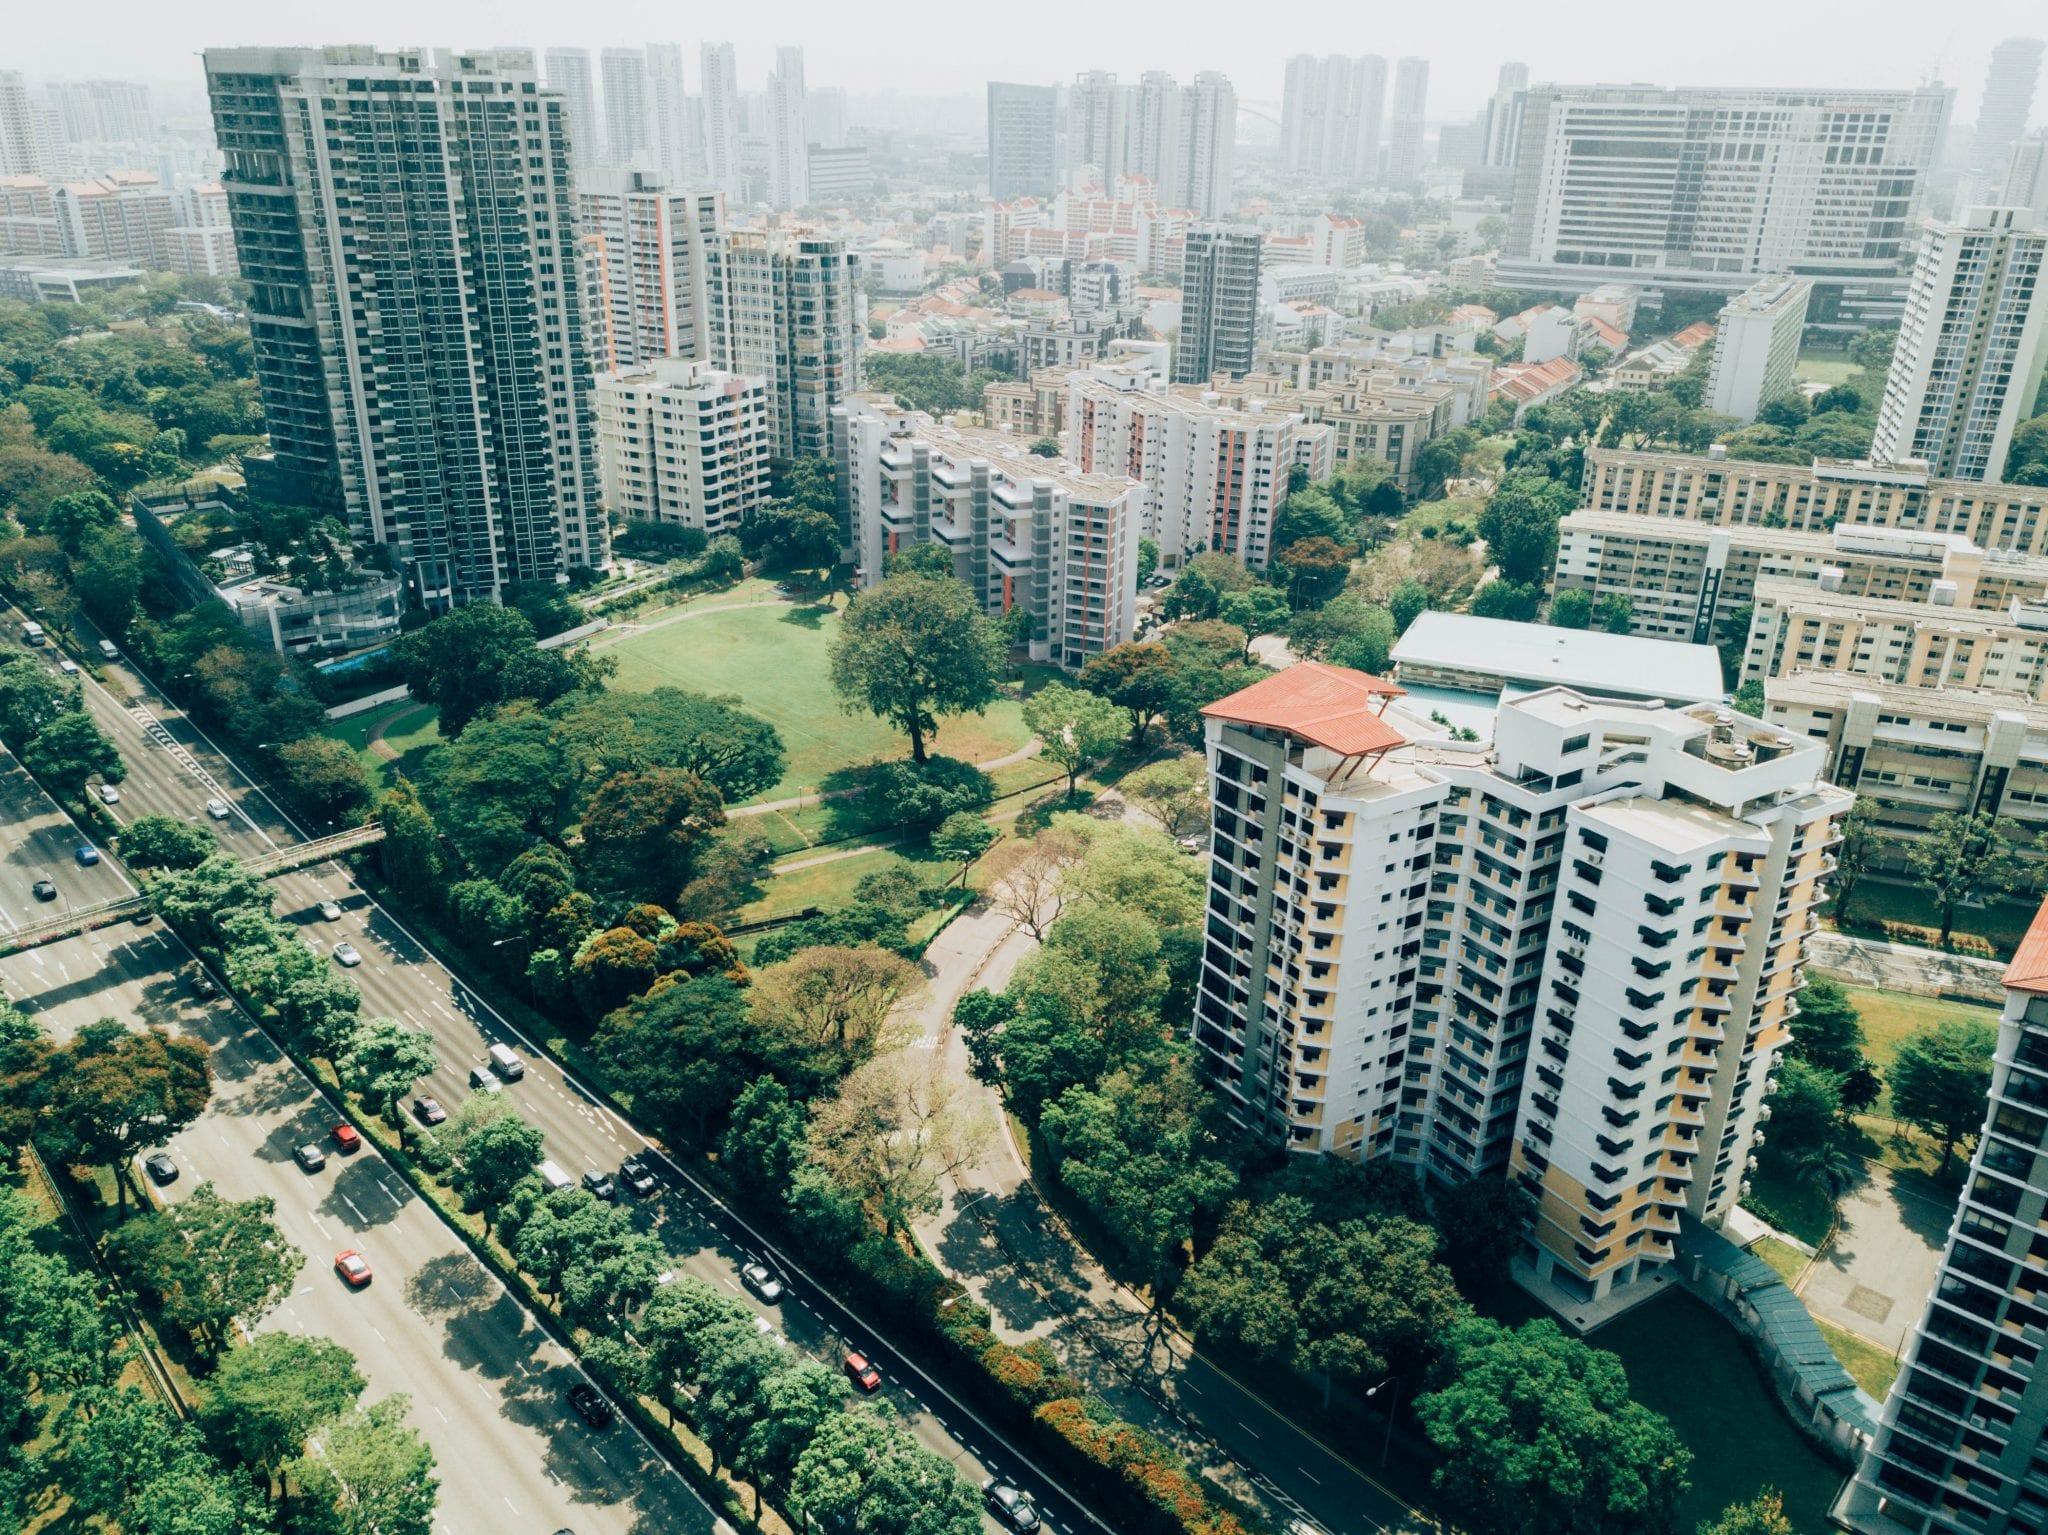 Green spaces between city high-rises and expressway